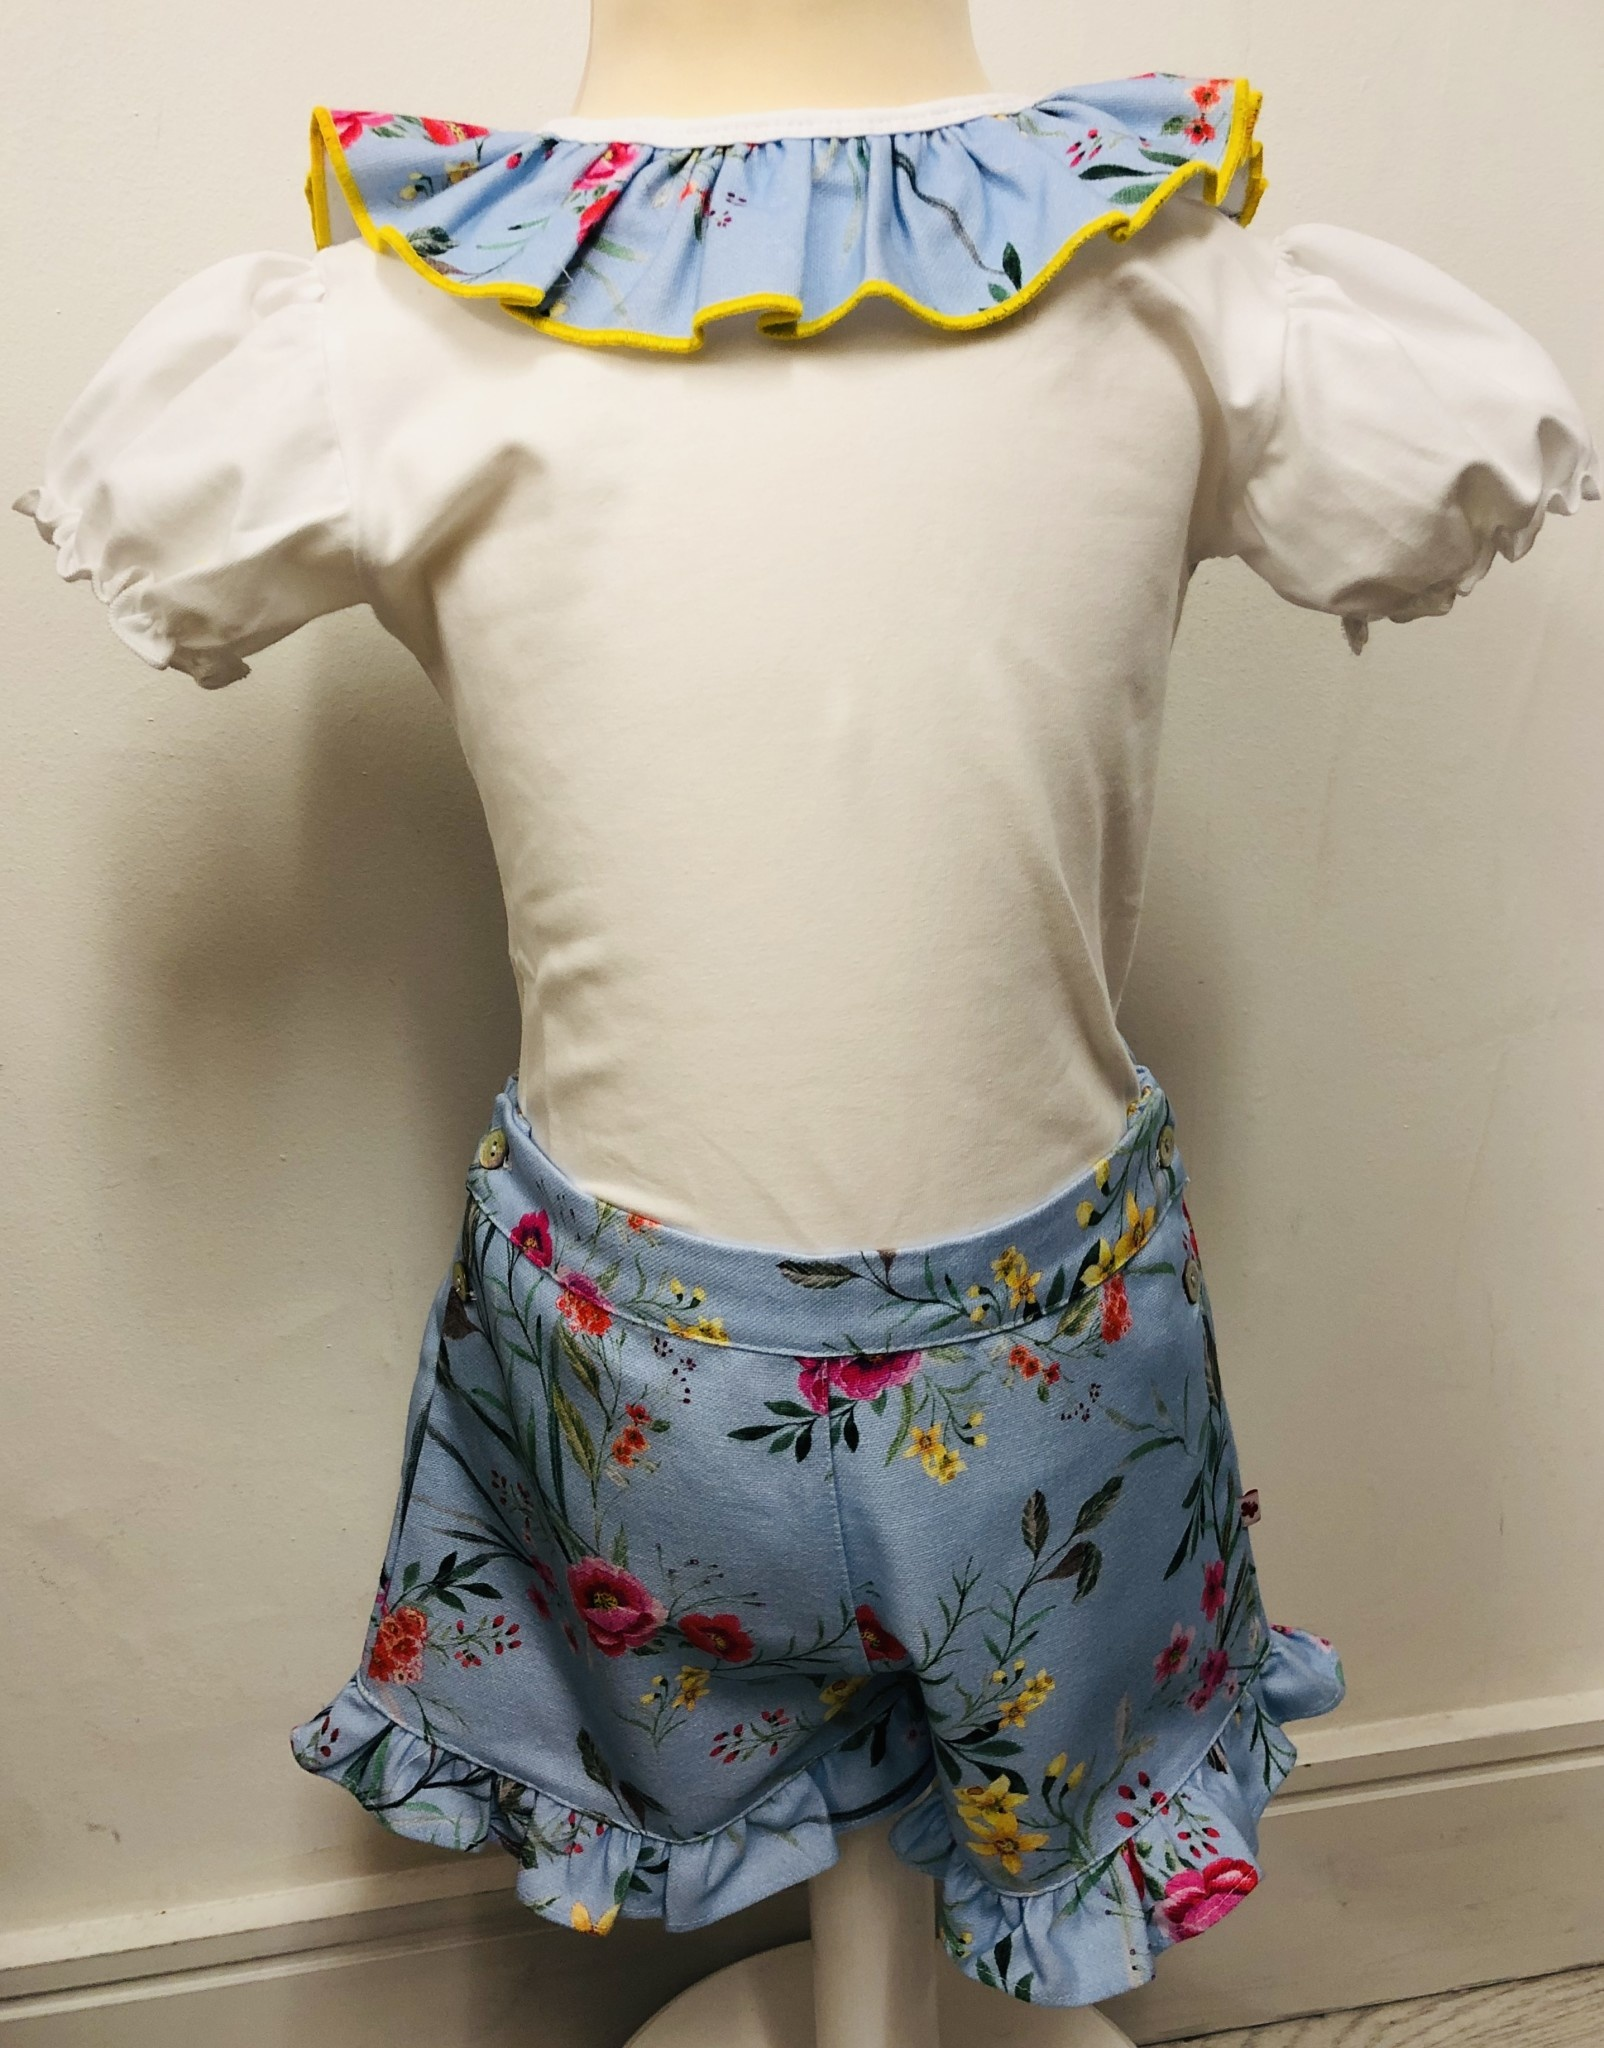 Bogoleta Bogoleta  Soft Blue Floral Top & Short Set With Bow Detail